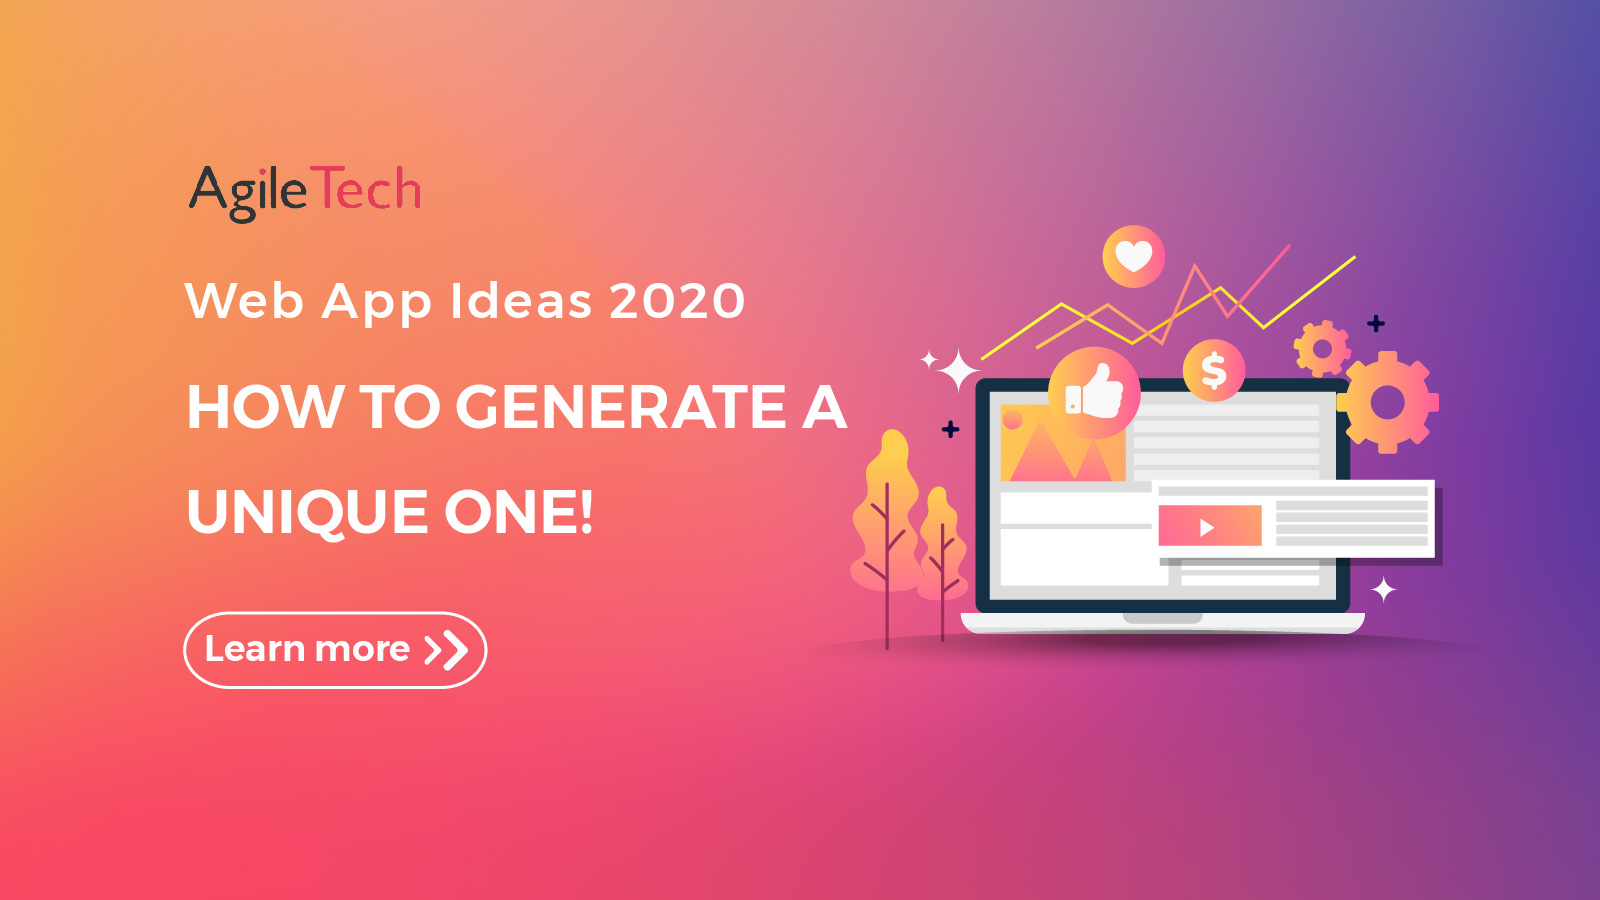 generate app ideas 2020 agiletech